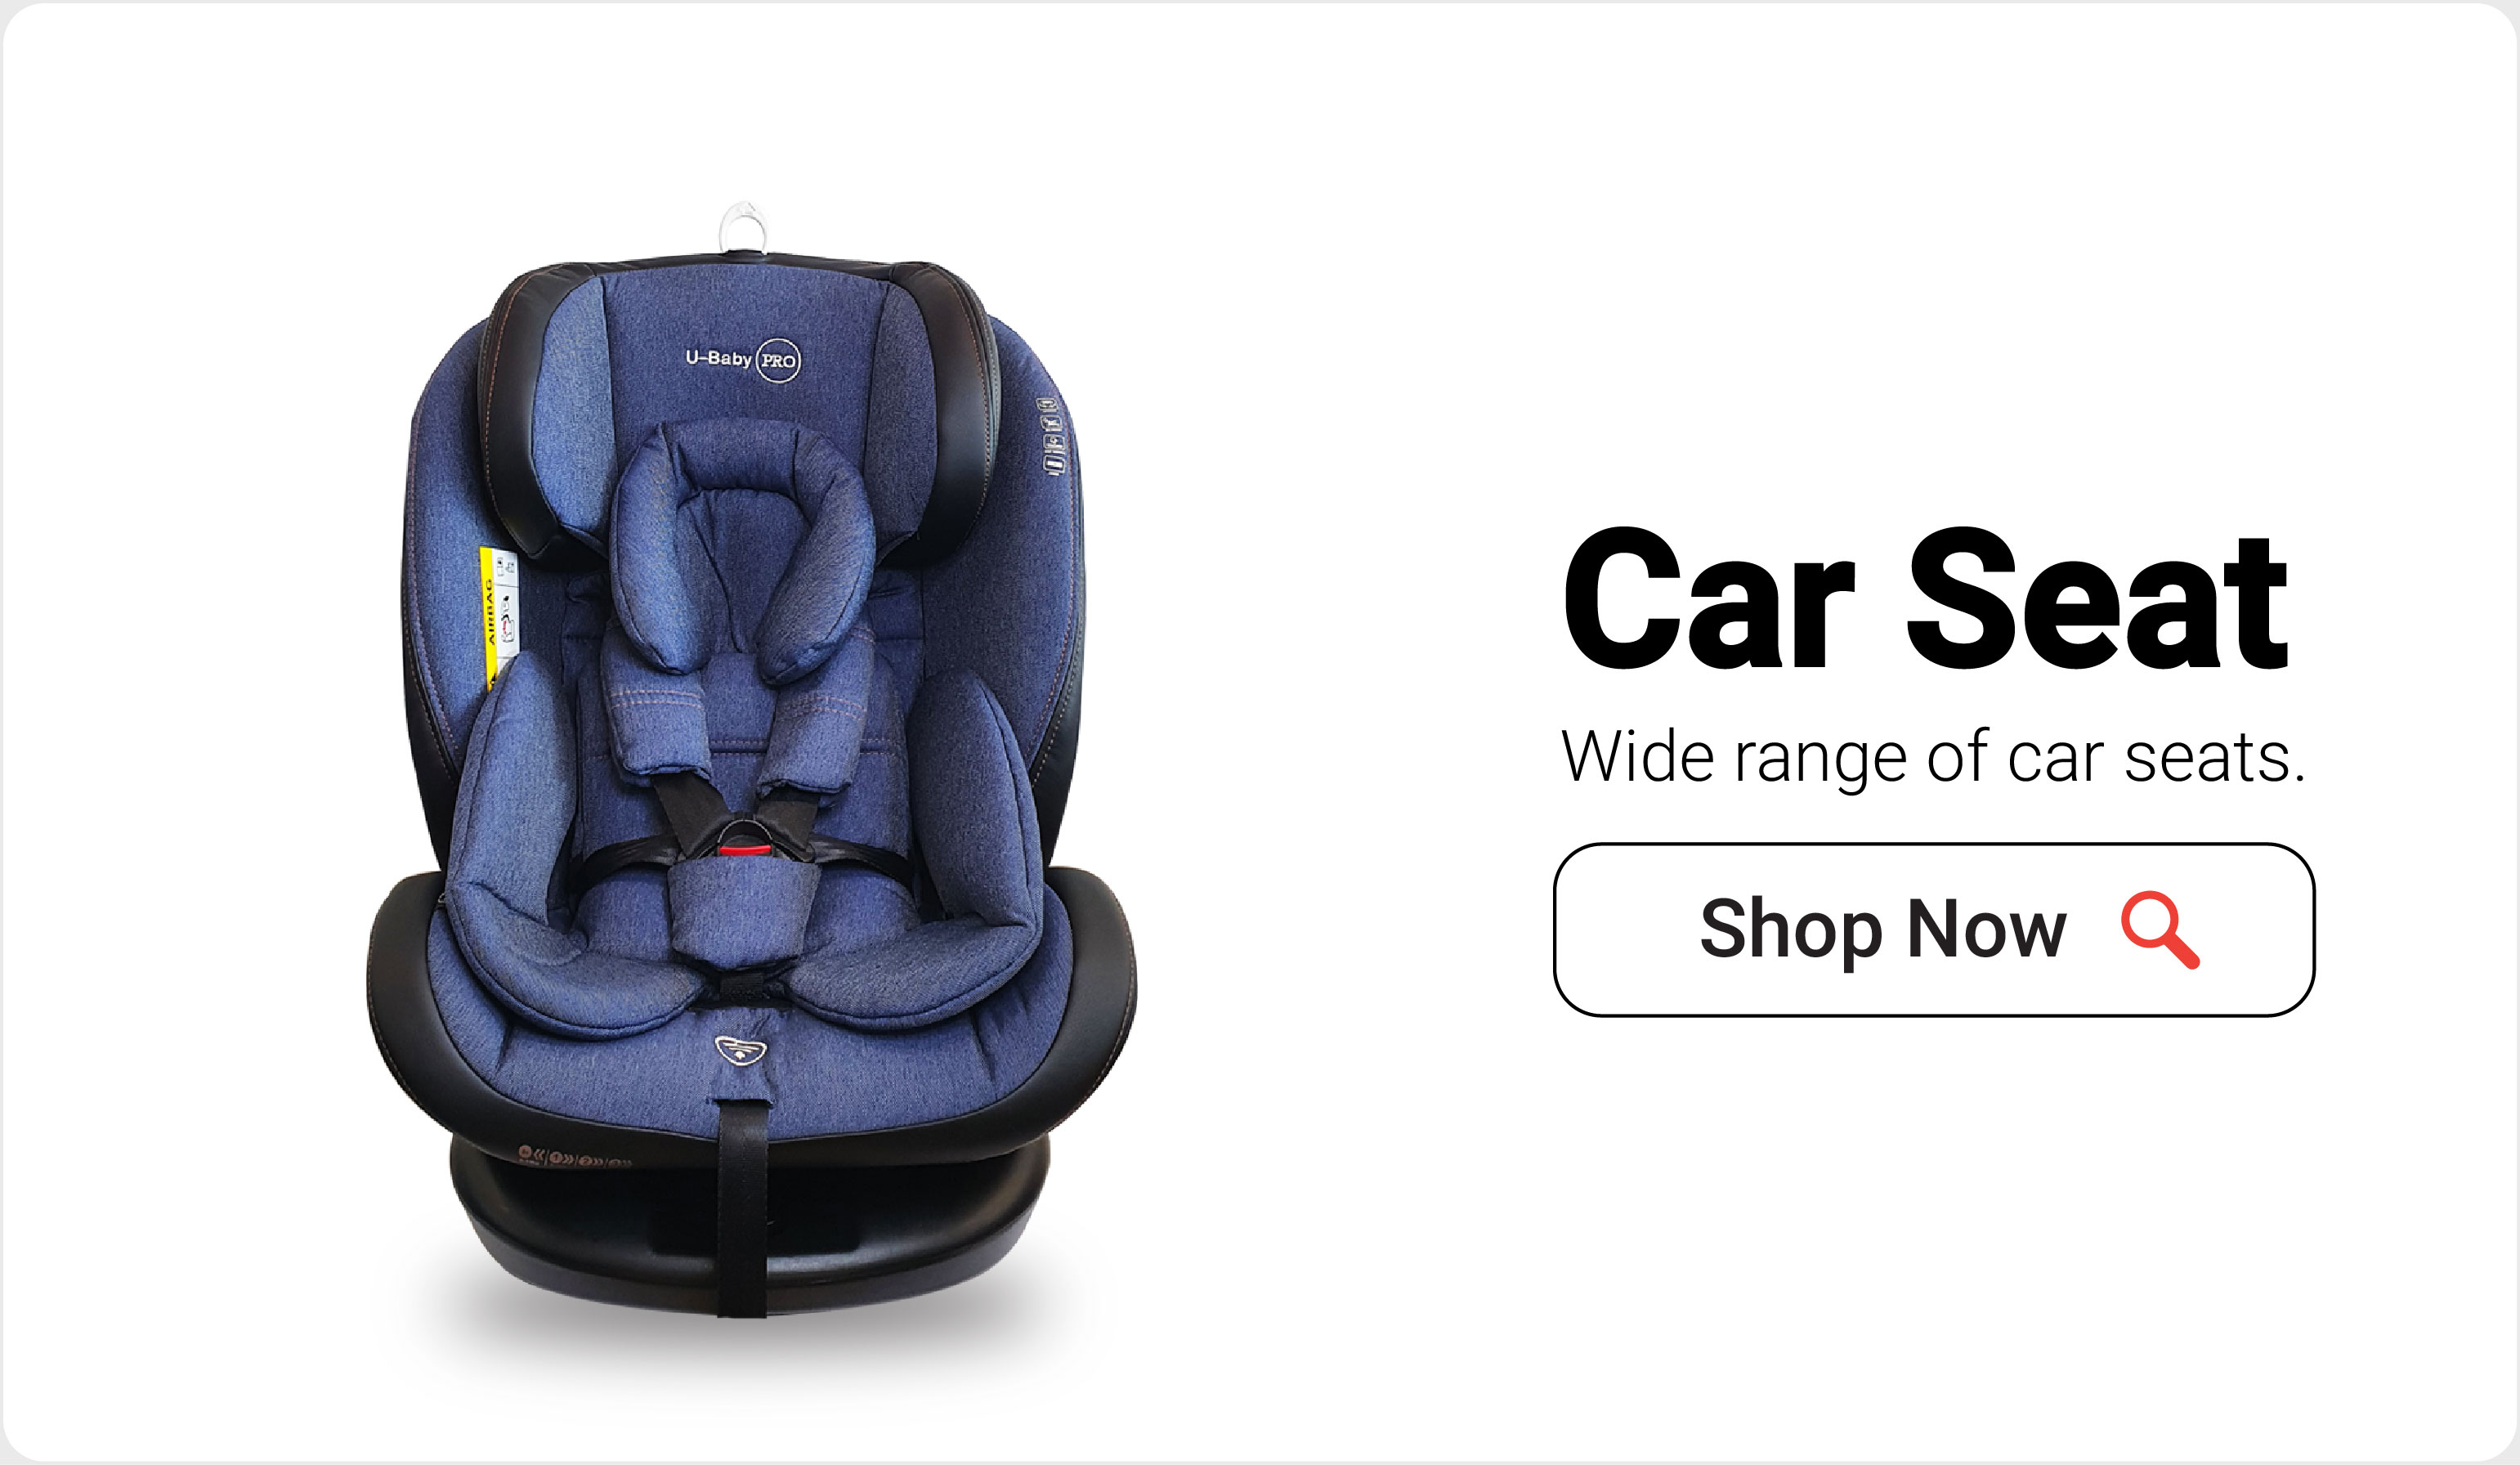 Category - Car Seat